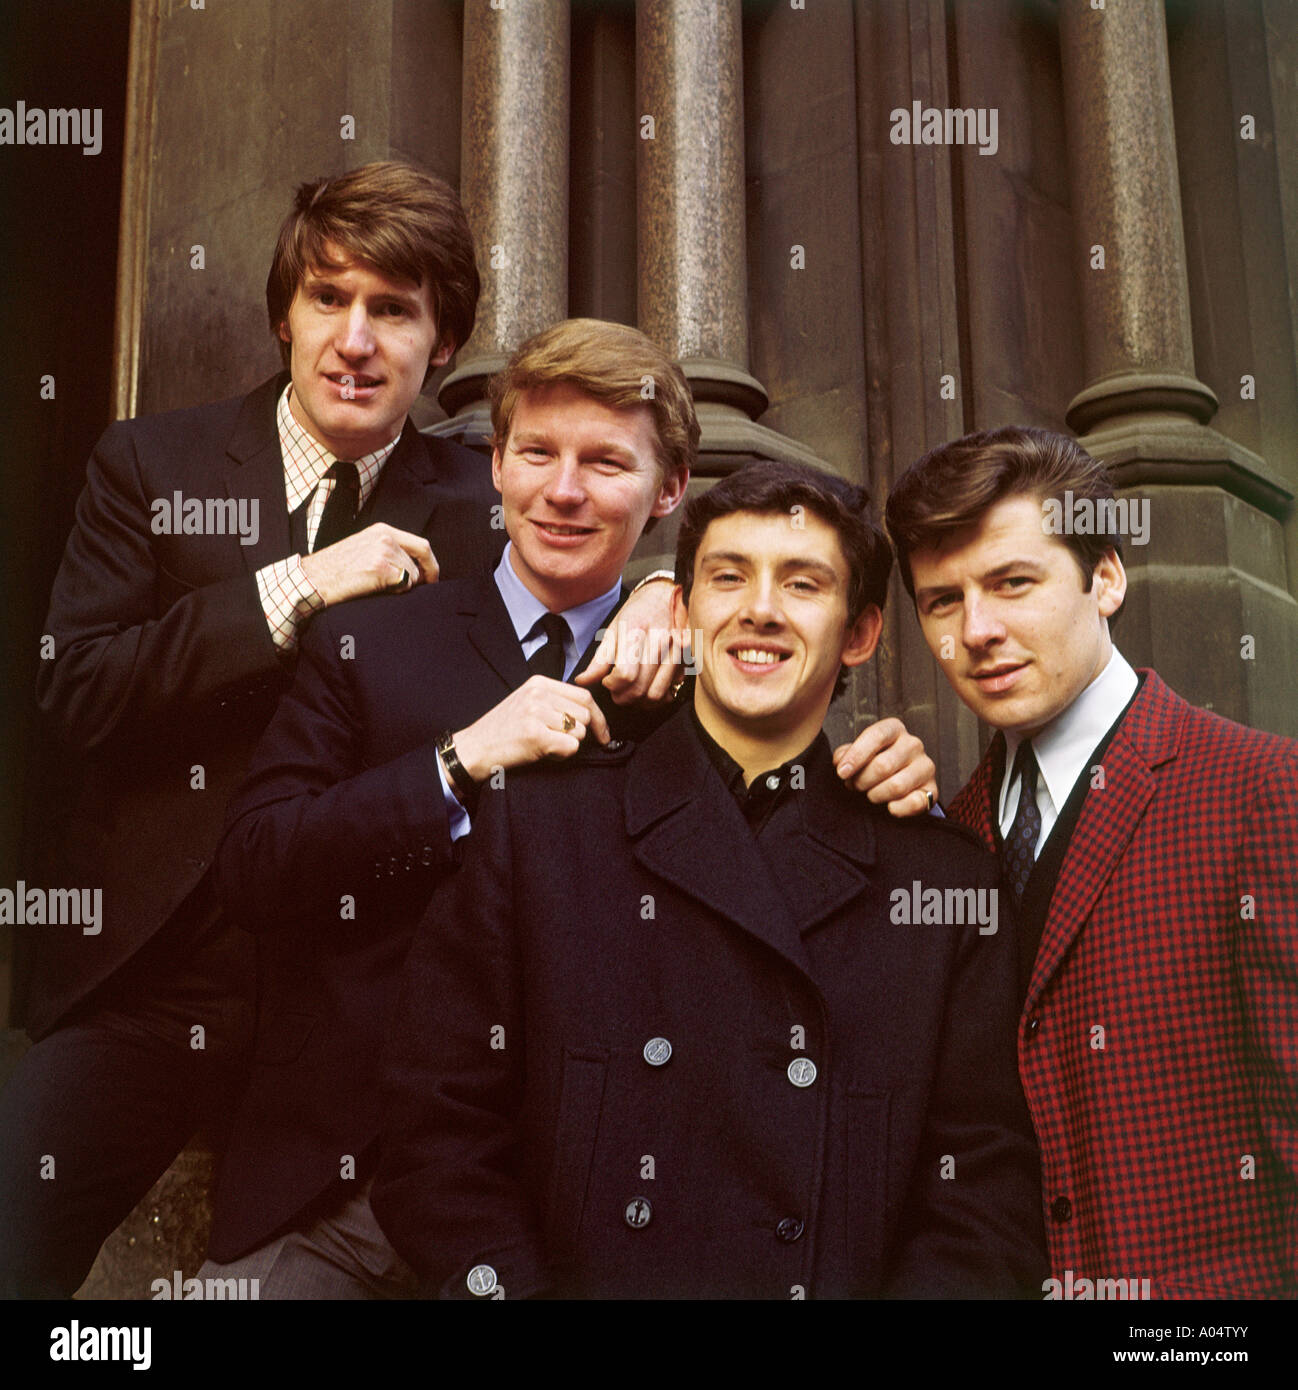 SEARCHERS UK pop group in 1965. See Description below for names. Photo Tony Gale - Stock Image